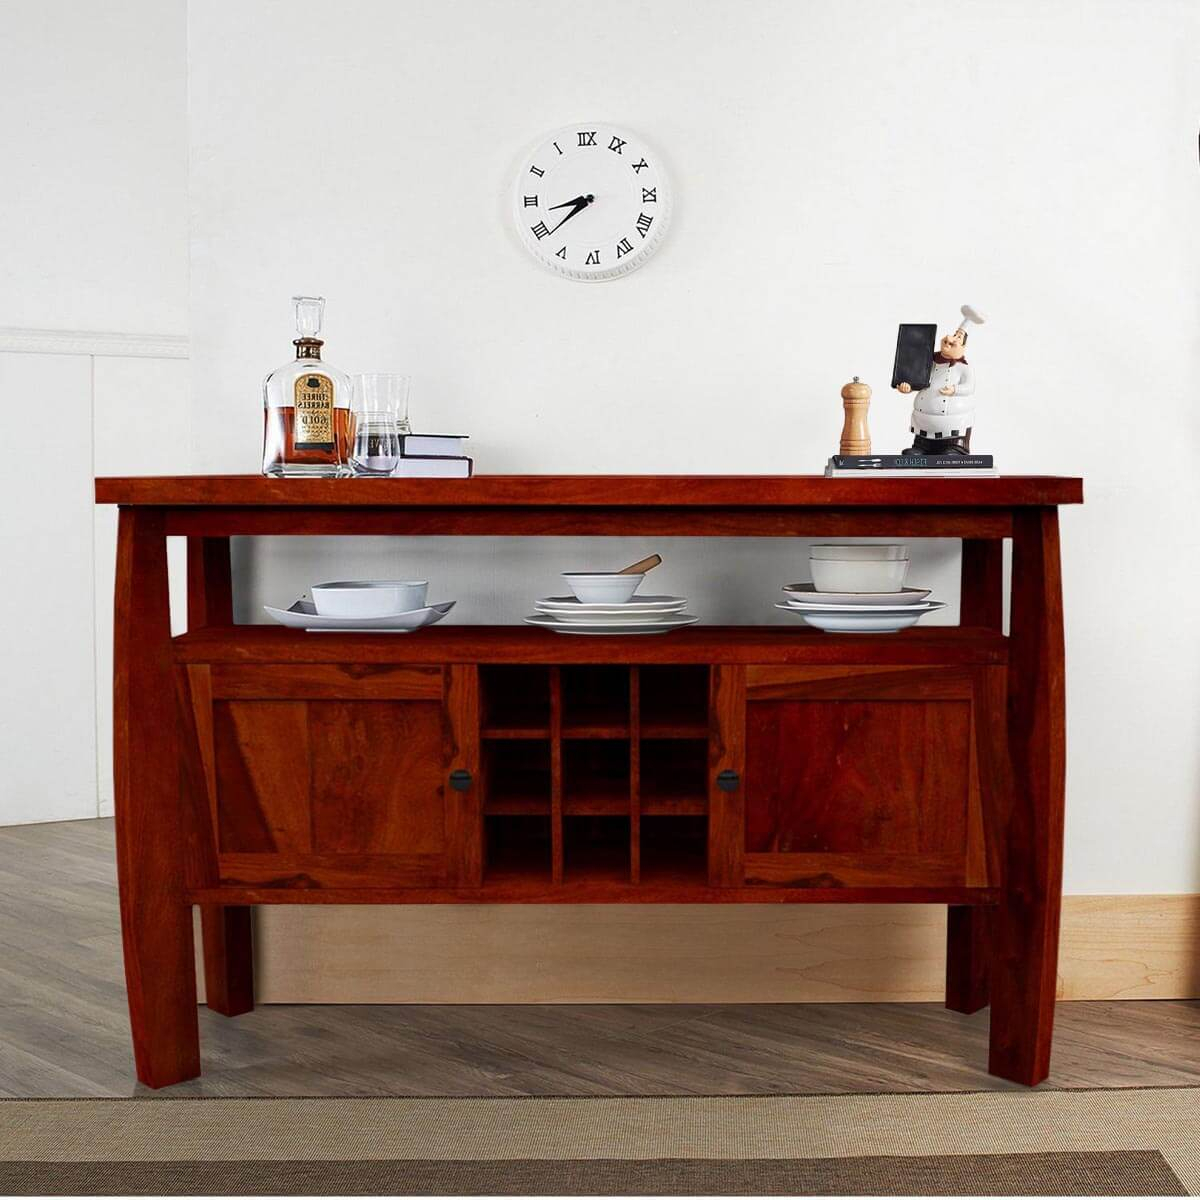 Contemporary Solid Wood Standing Wine Bar Rustic Buffet Table Throughout Contemporary Wine Bar Buffets (View 13 of 30)